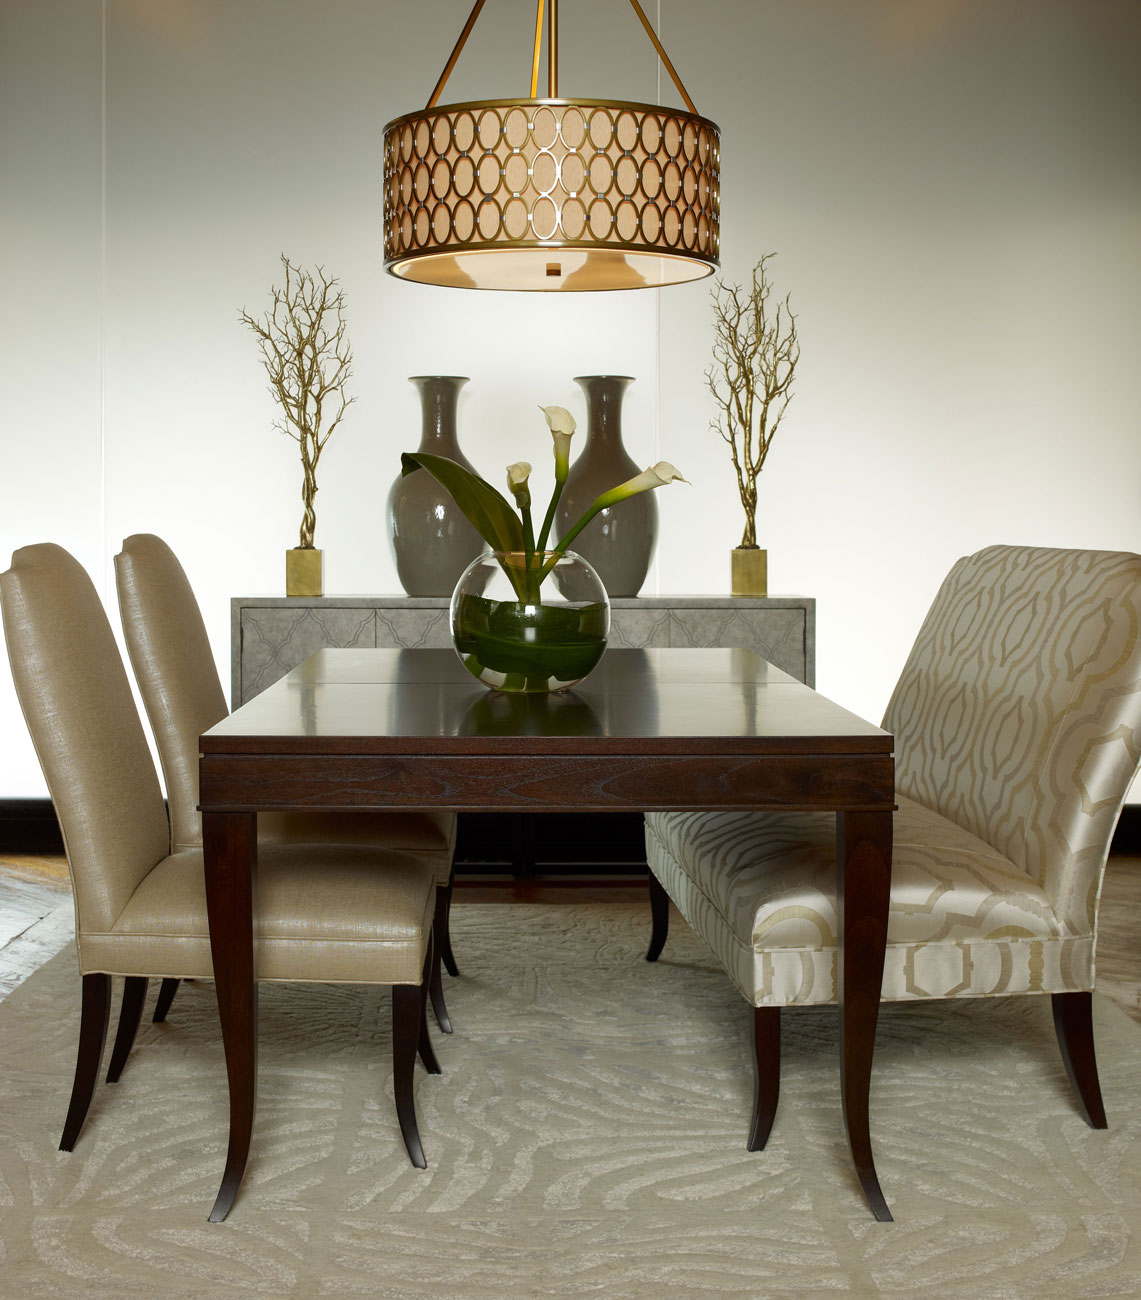 Candice Olson Dining Room Ideas Part - 39: 2013 Candice Olsonu0027s Dining Room Collection